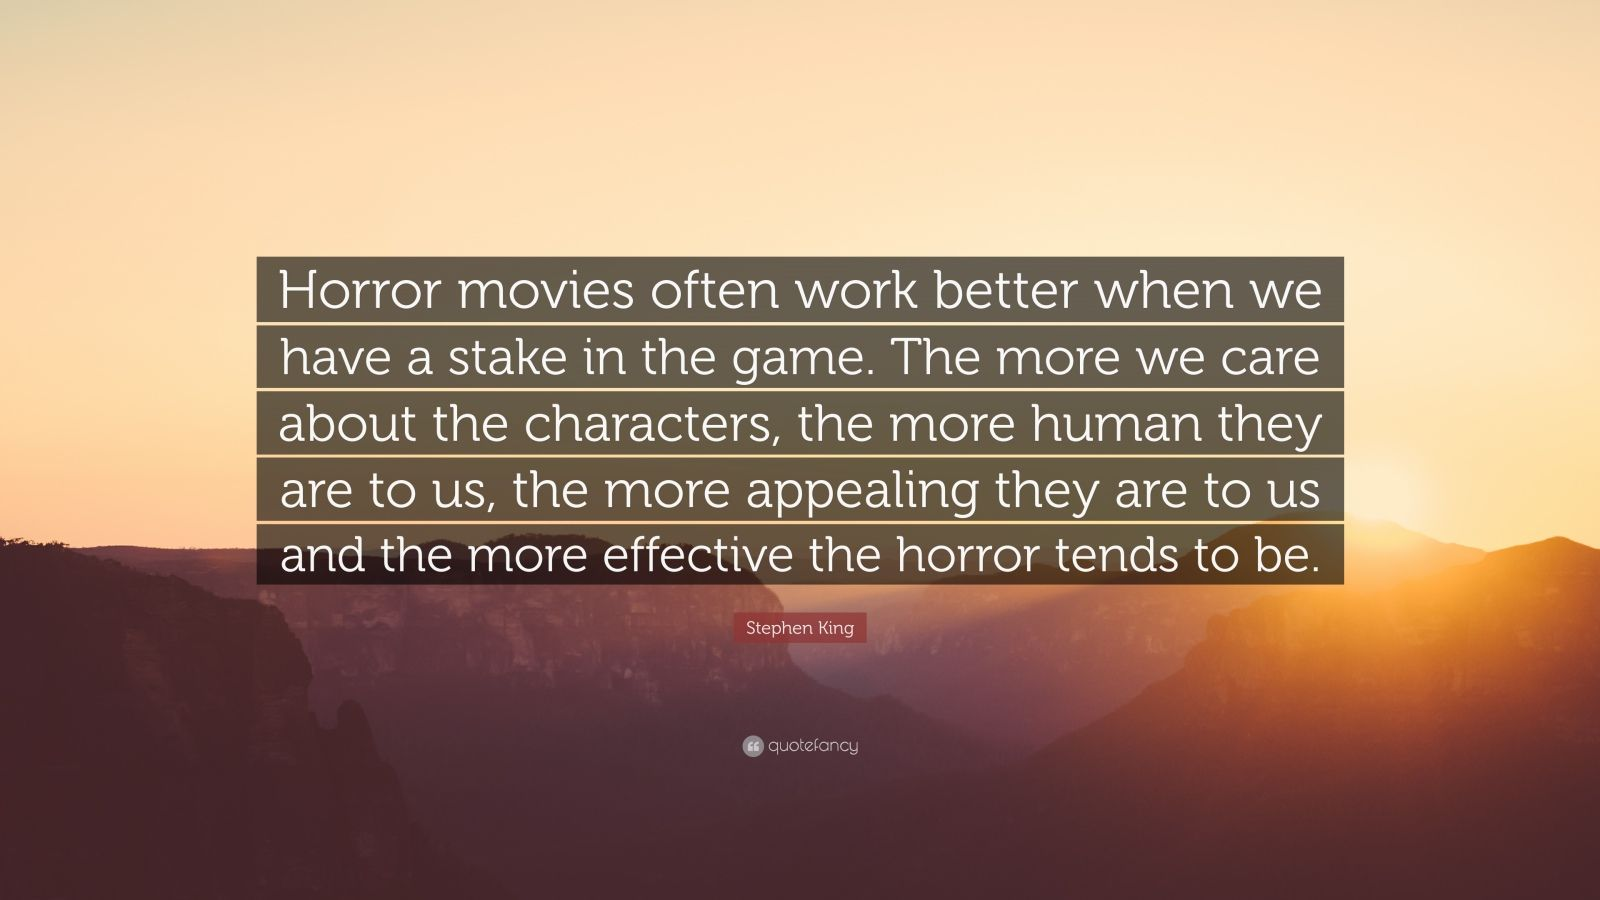 """Stephen King Quote: """"Horror movies often work better when we have a stake in the game. The more we care about the characters, the more human they are to us, the more appealing they are to us and the more effective the horror tends to be."""""""